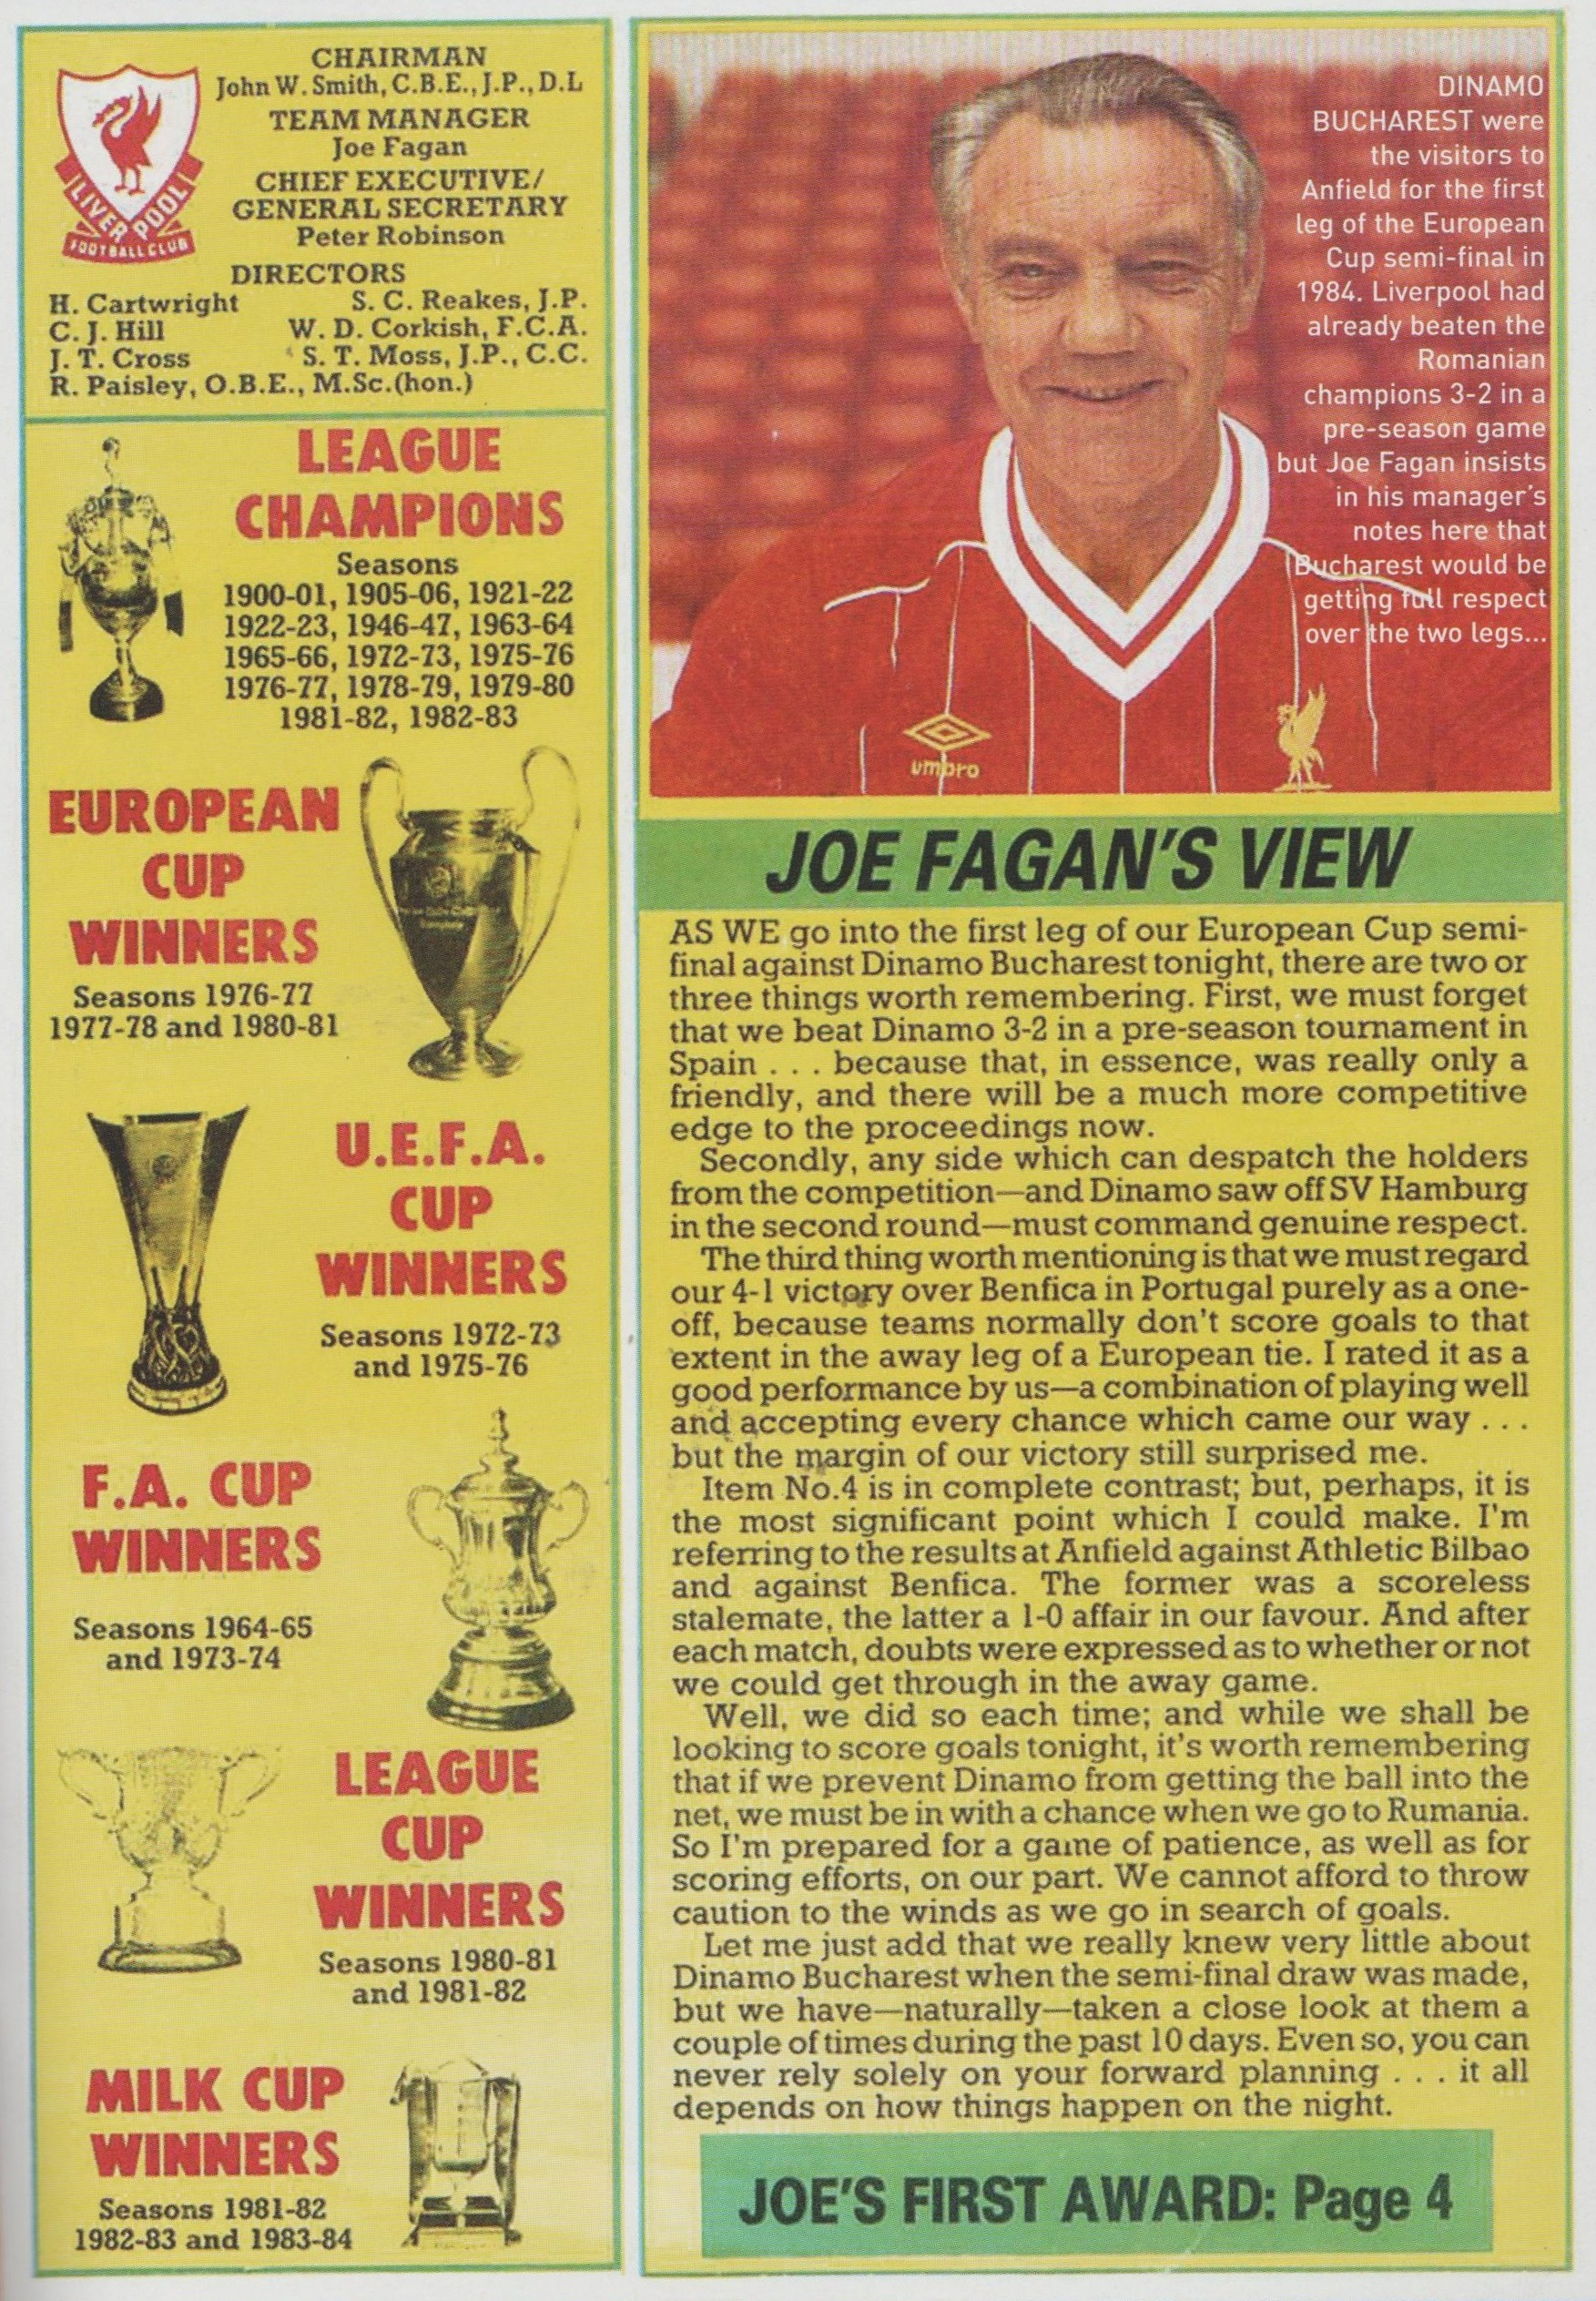 Fagan previews Dinamo Bucharest - 25 September 1984